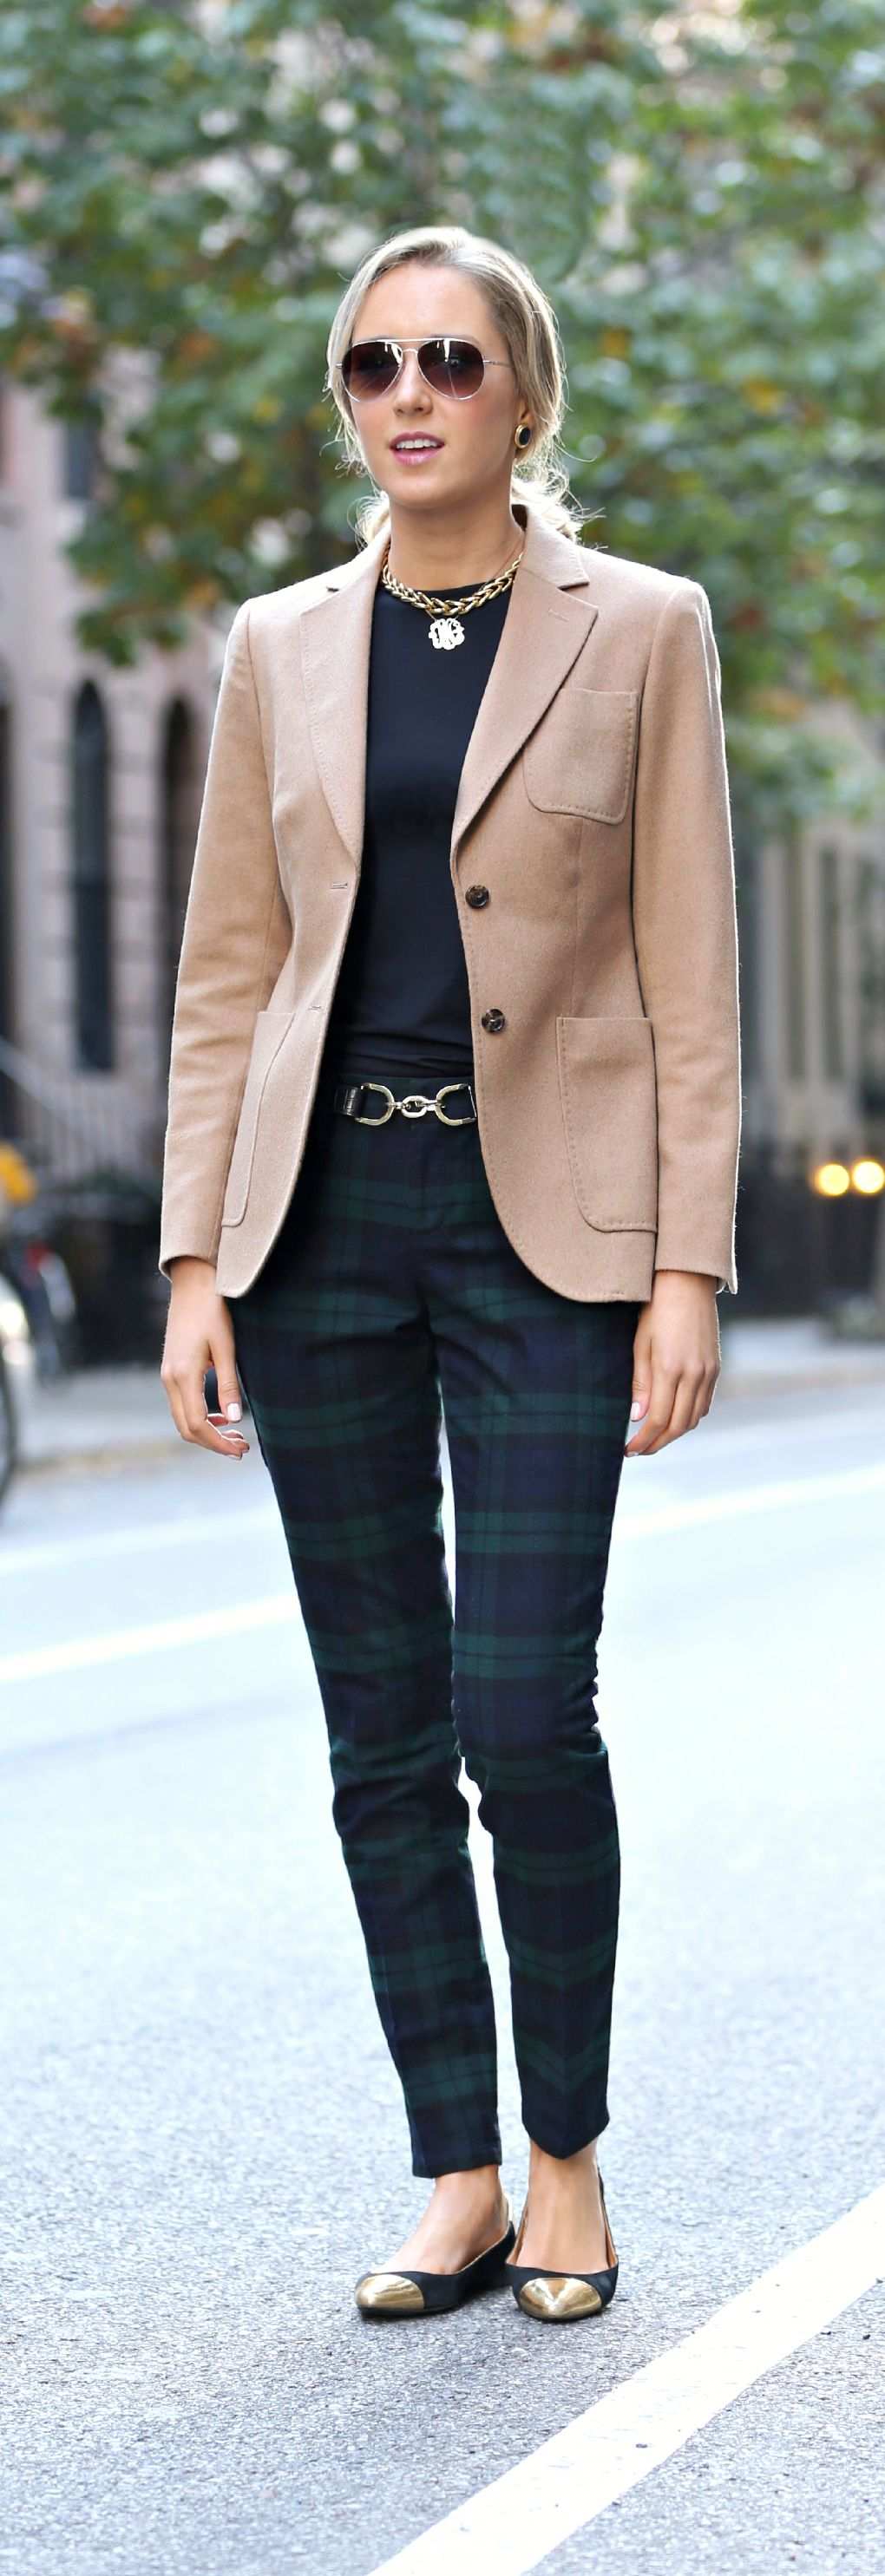 The Classy Cubicle Pants Party Fashion Blog Young